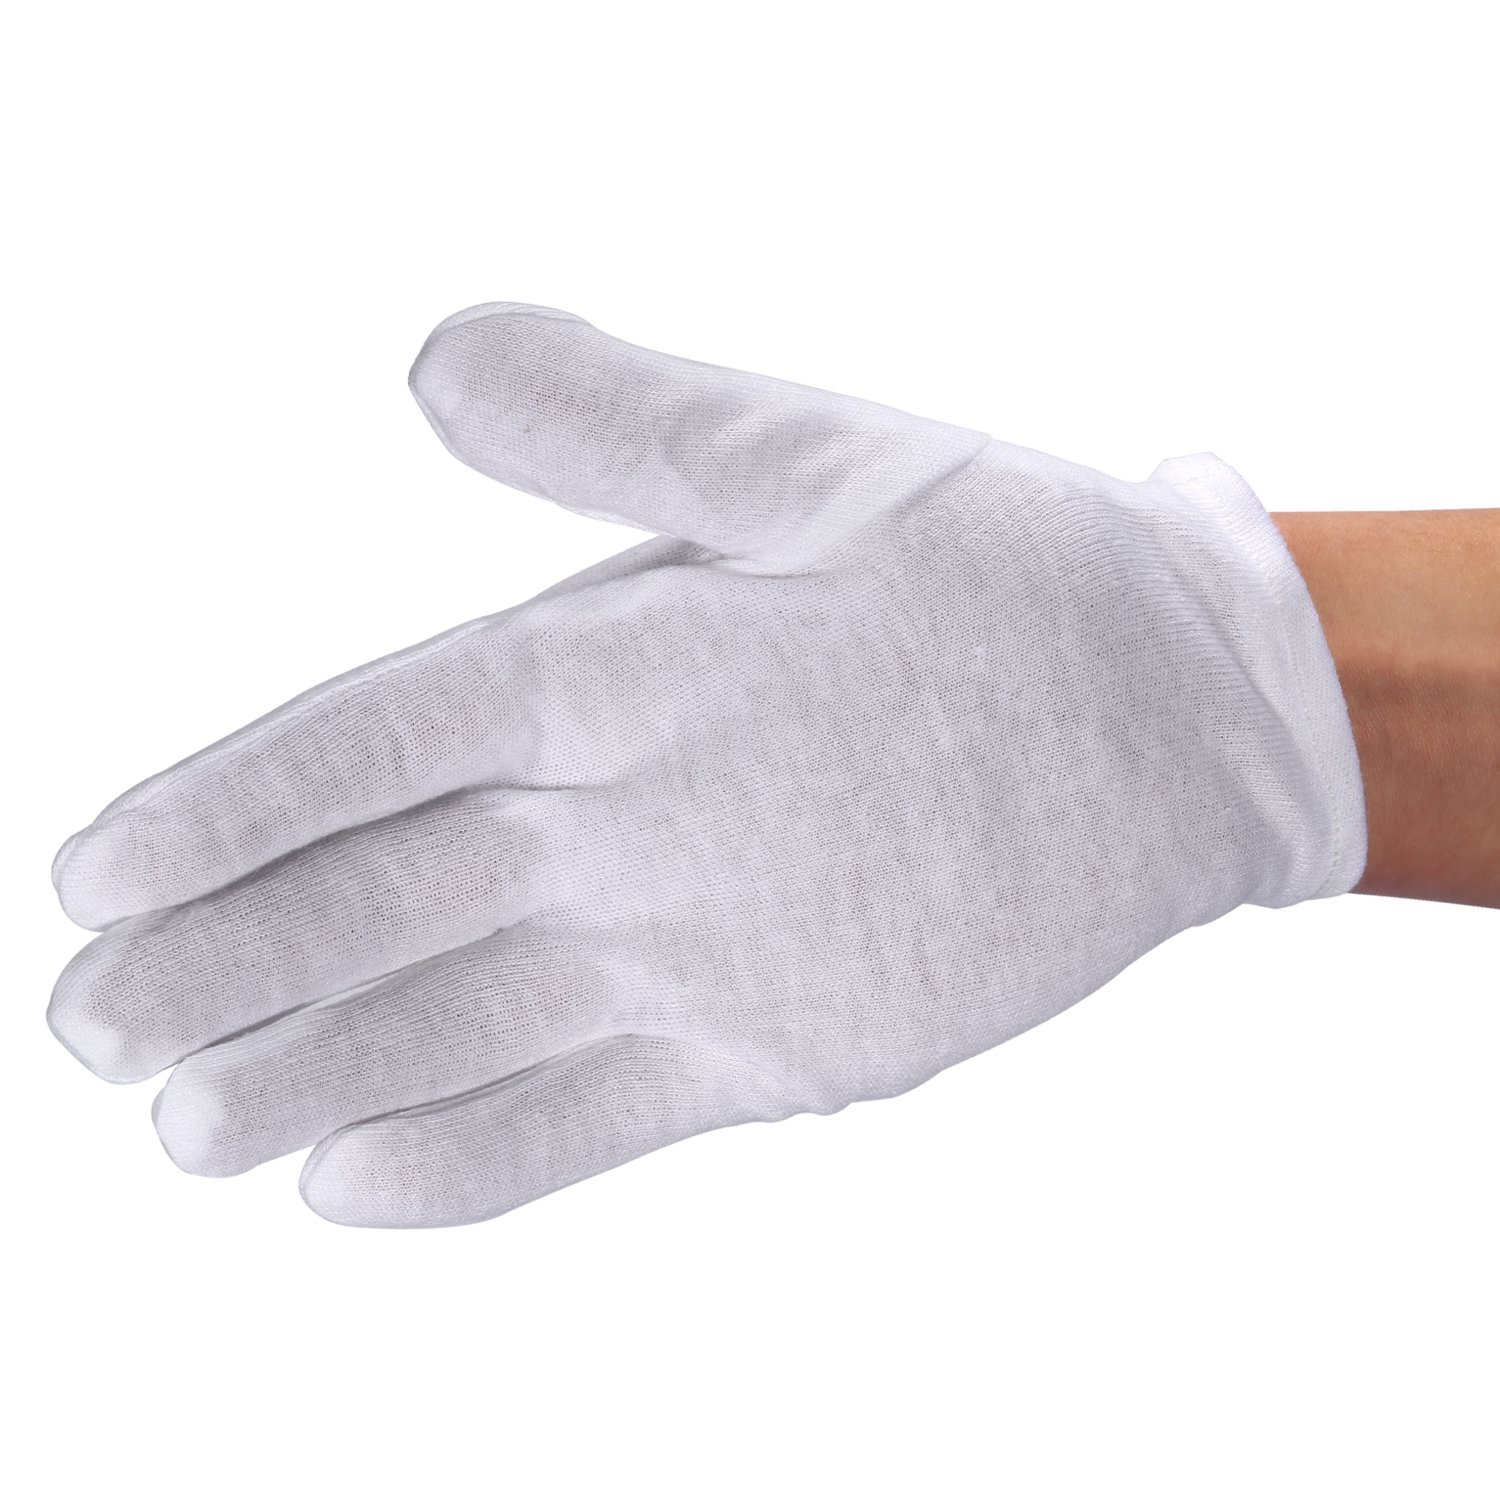 Neewer 24 Pairs (48 Gloves) 100% Cotton Lisle White Inspection Work Gloves for Coin, Jewelry, Silver, or Photo Inspection by Neewer (Image #5)